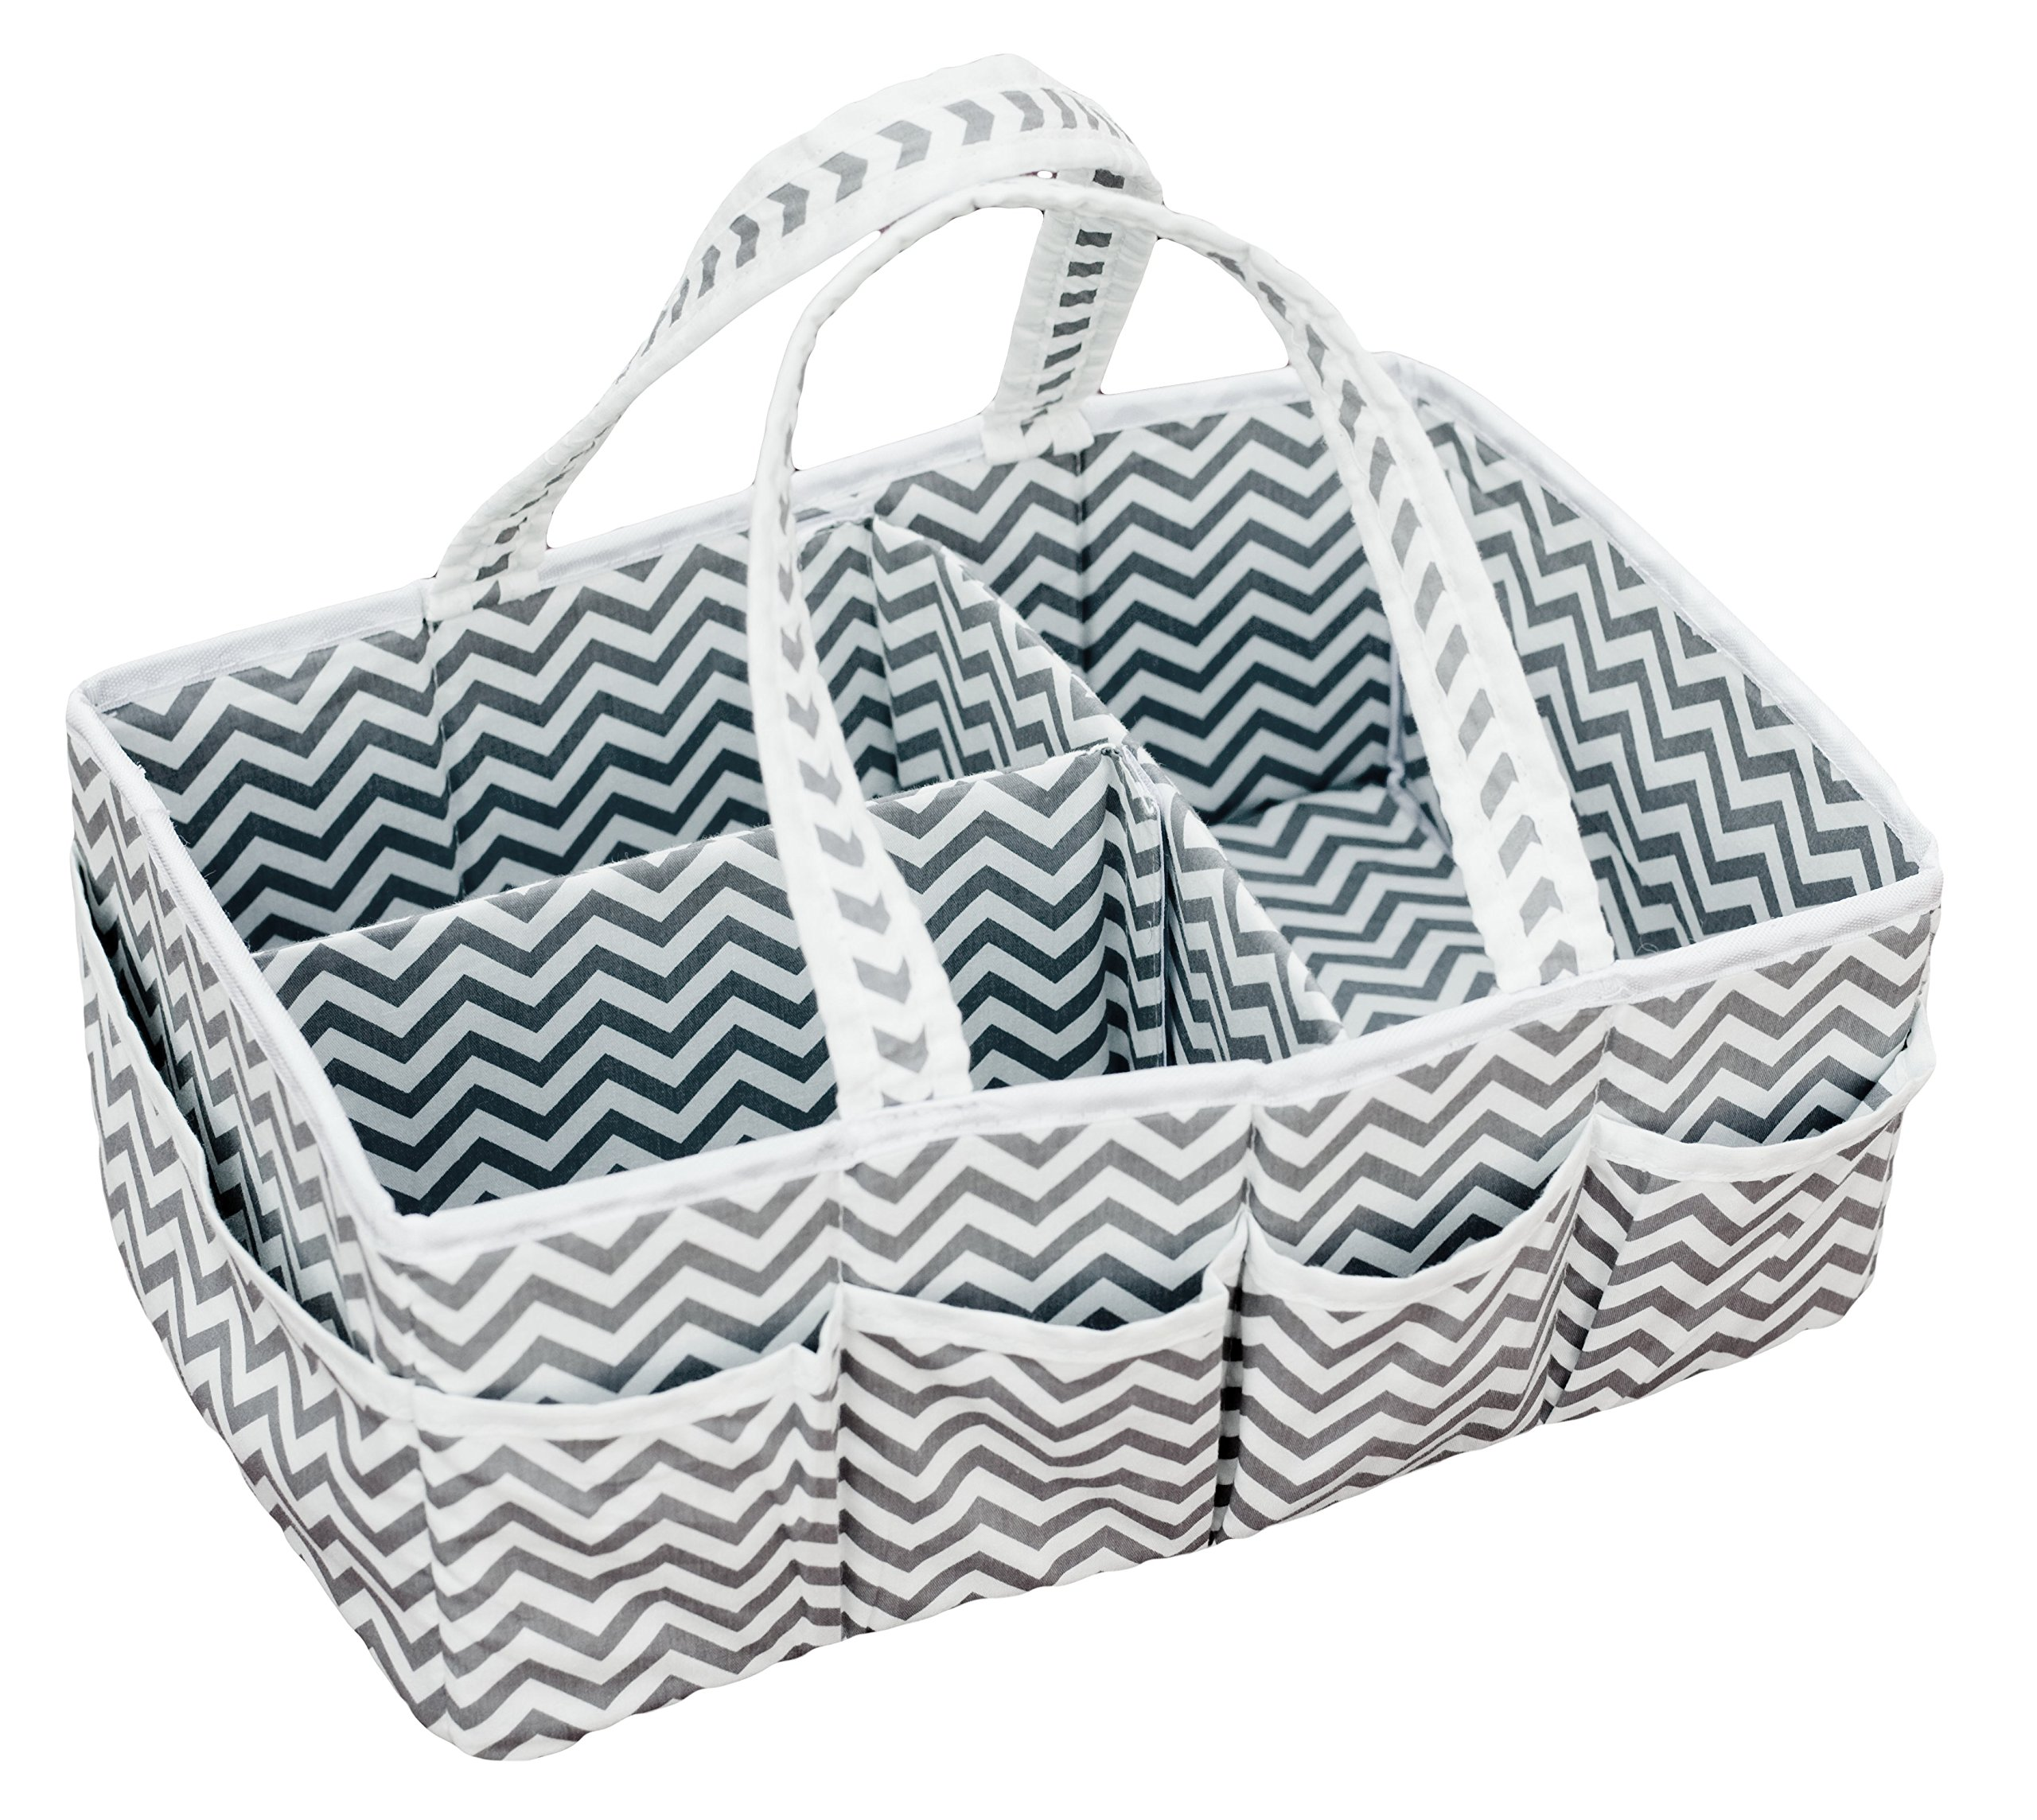 SARVOND Baby Diaper Caddy Organizer w/10 Side Pockets & Strong Handles. Trendy Chevron Tote for Boys & Girls, Shower Gift Basket, Easy for Travel & Nursery Changing Tables, Portable Organizing Caddie